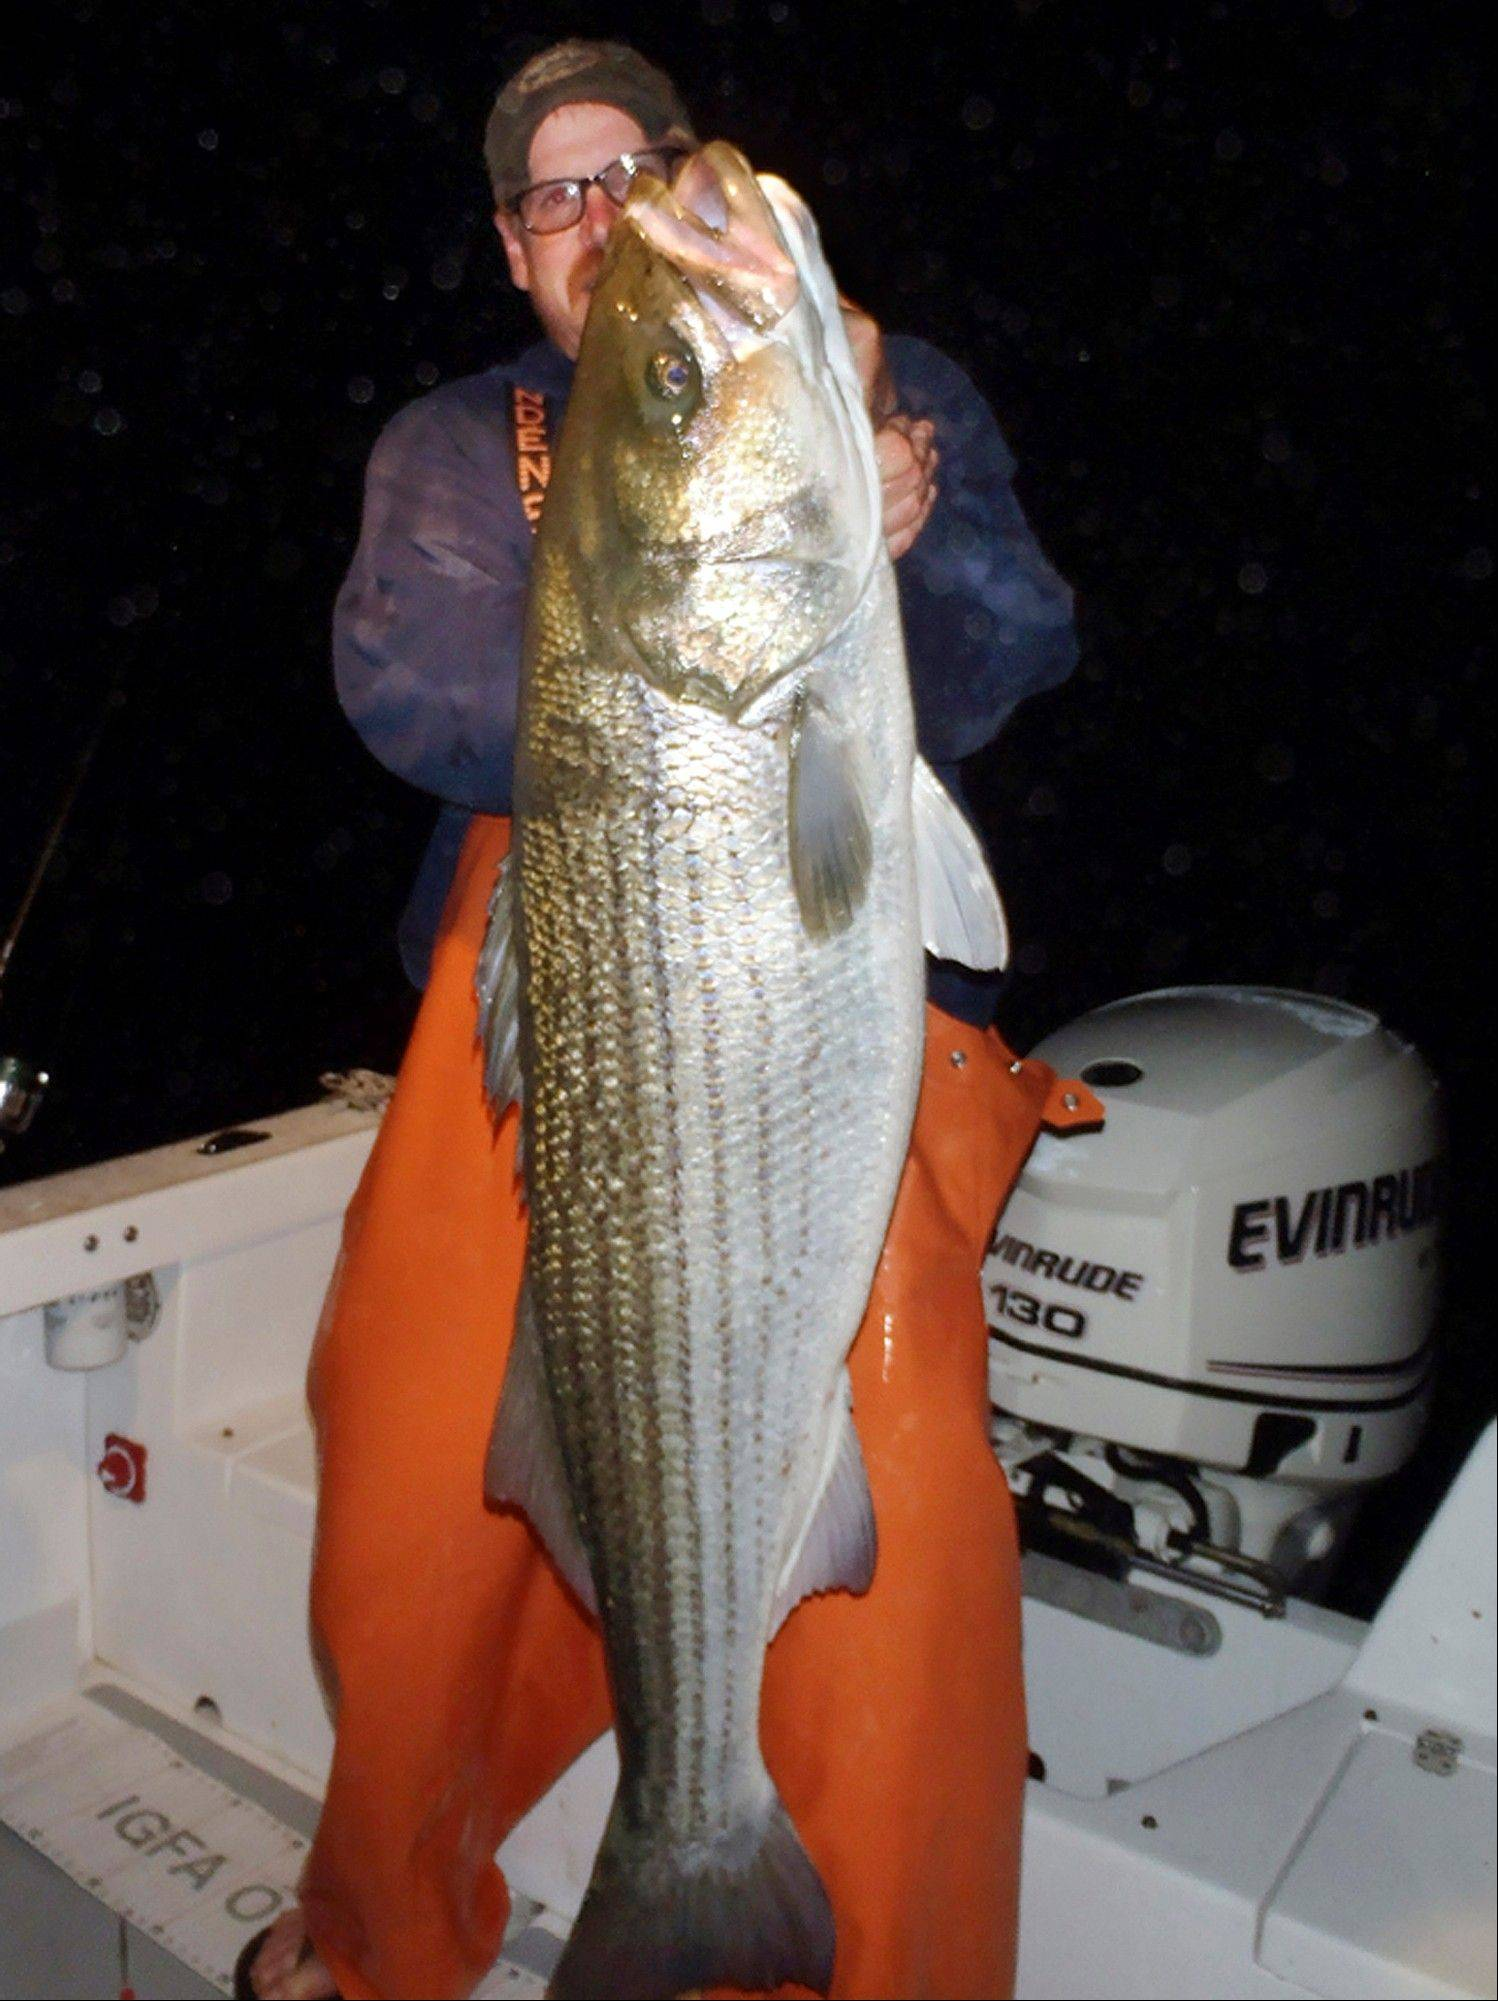 Greg Myerson, of North Branford, Conn., shows one of the record striped bass he caught off the Connecticut coast. Myerson consistently catches striped bass 50 pounds and much larger by methodically studying his prey and developing devices to lure the fish to him.